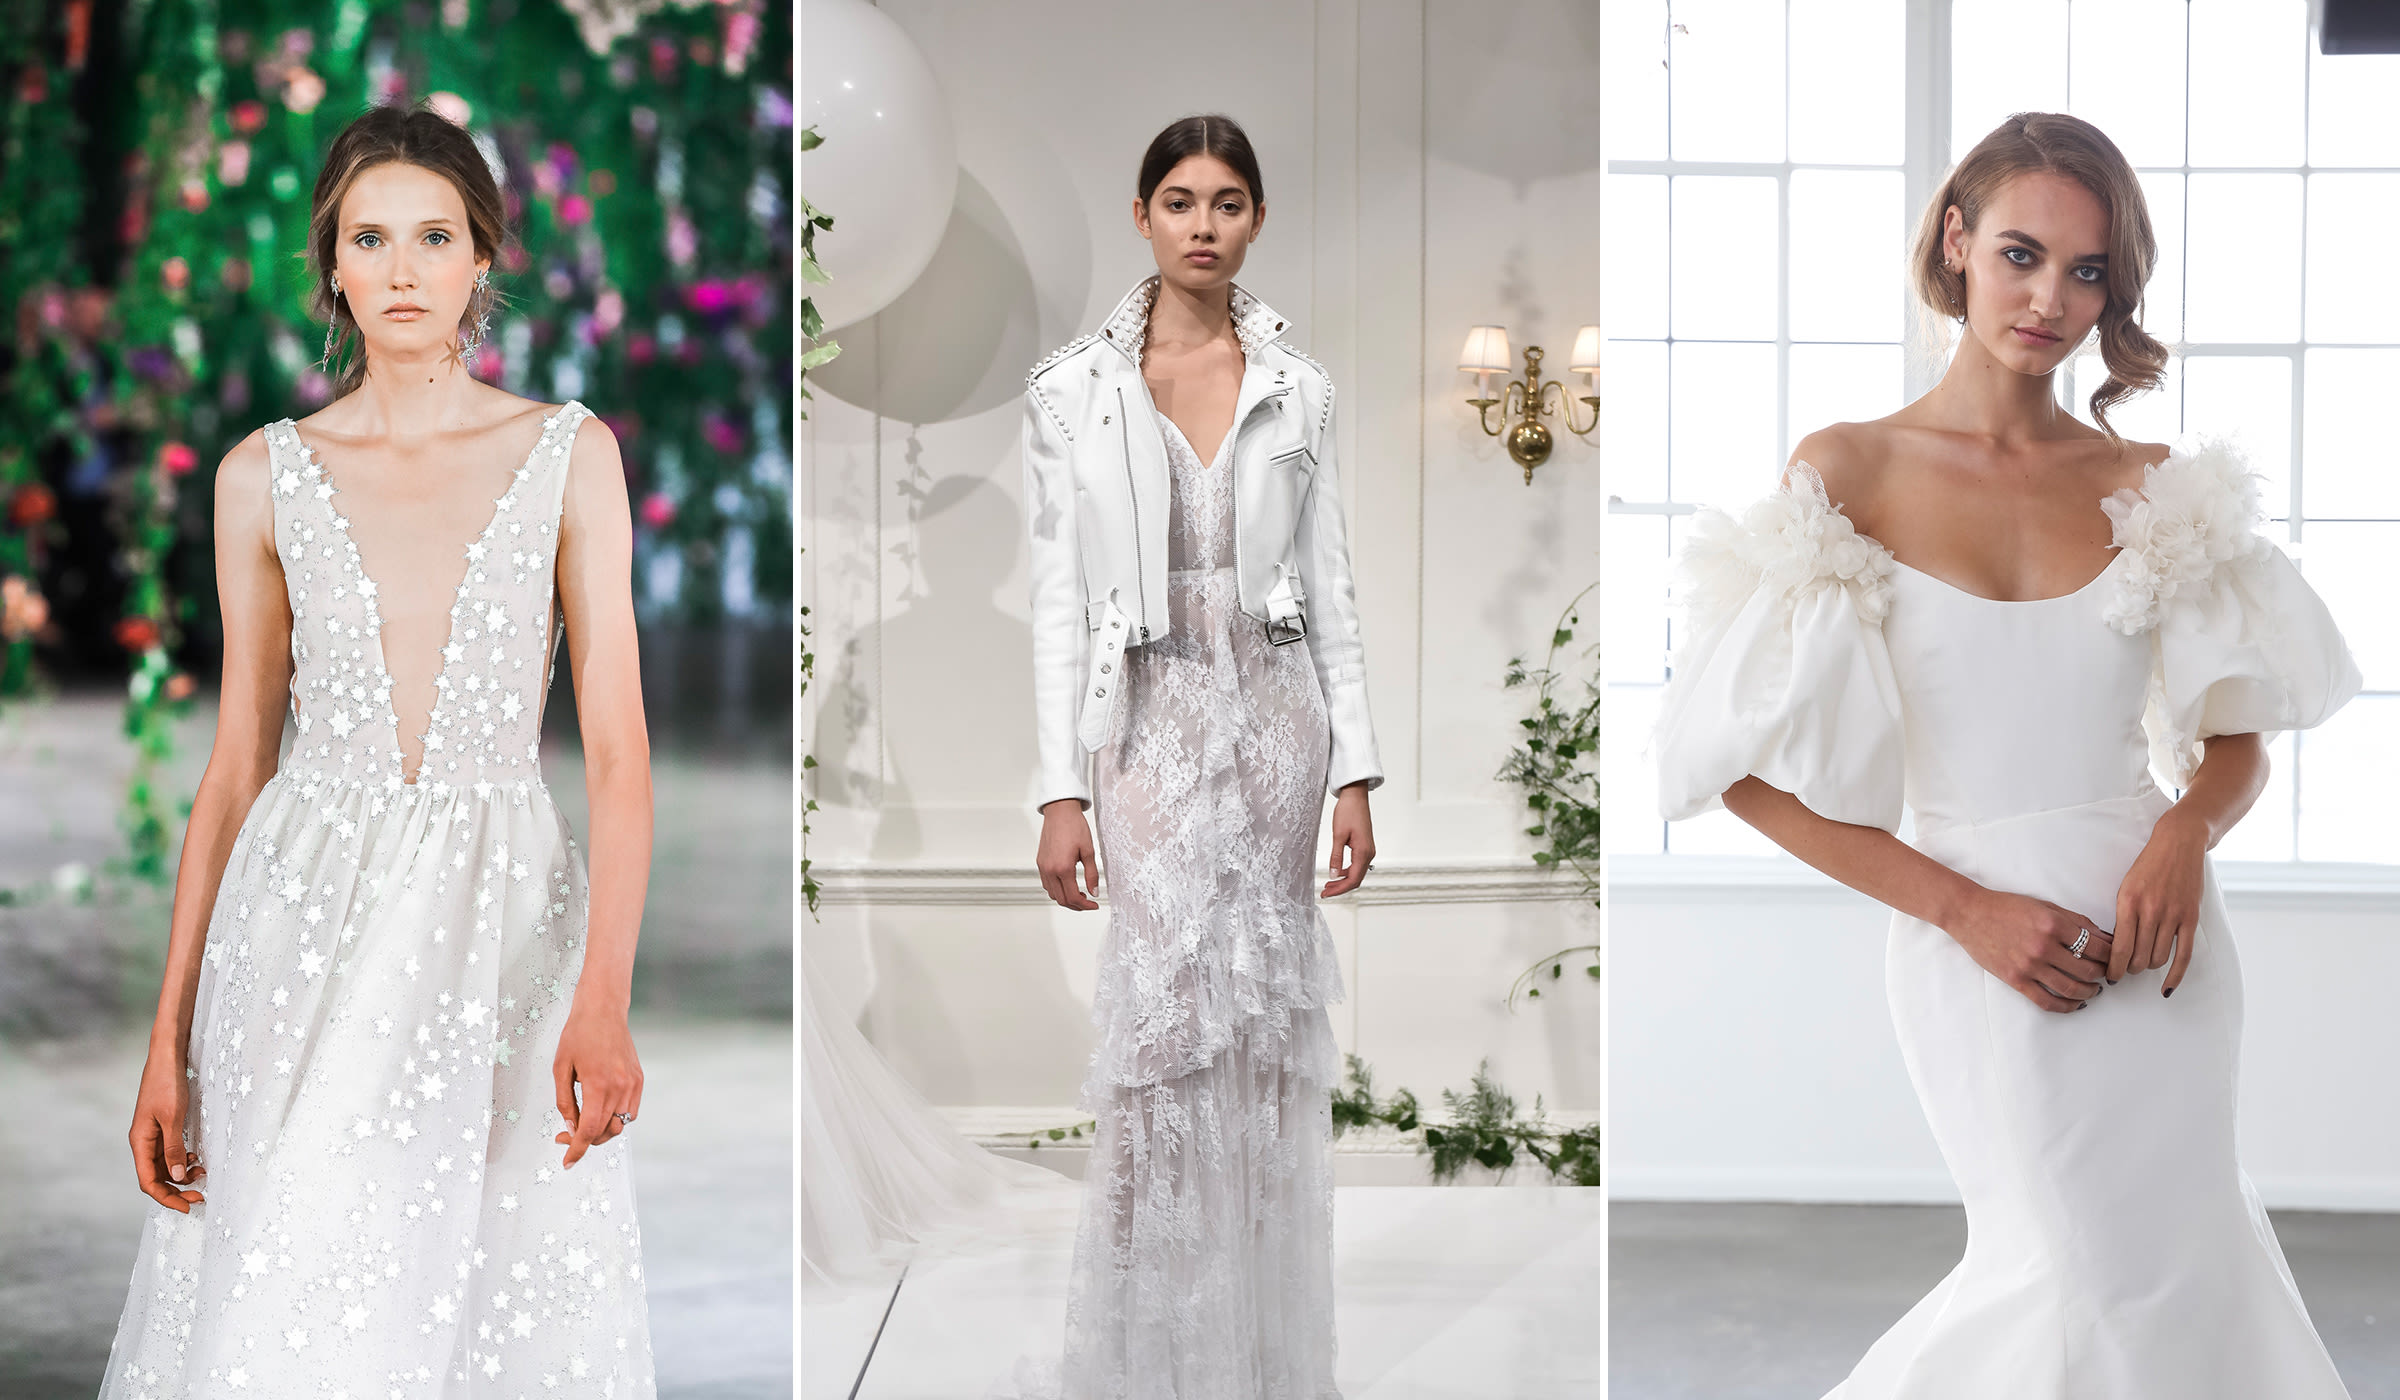 New Wedding Ideas 2018: The 2018 Wedding Dress Trends New Brides Need To See